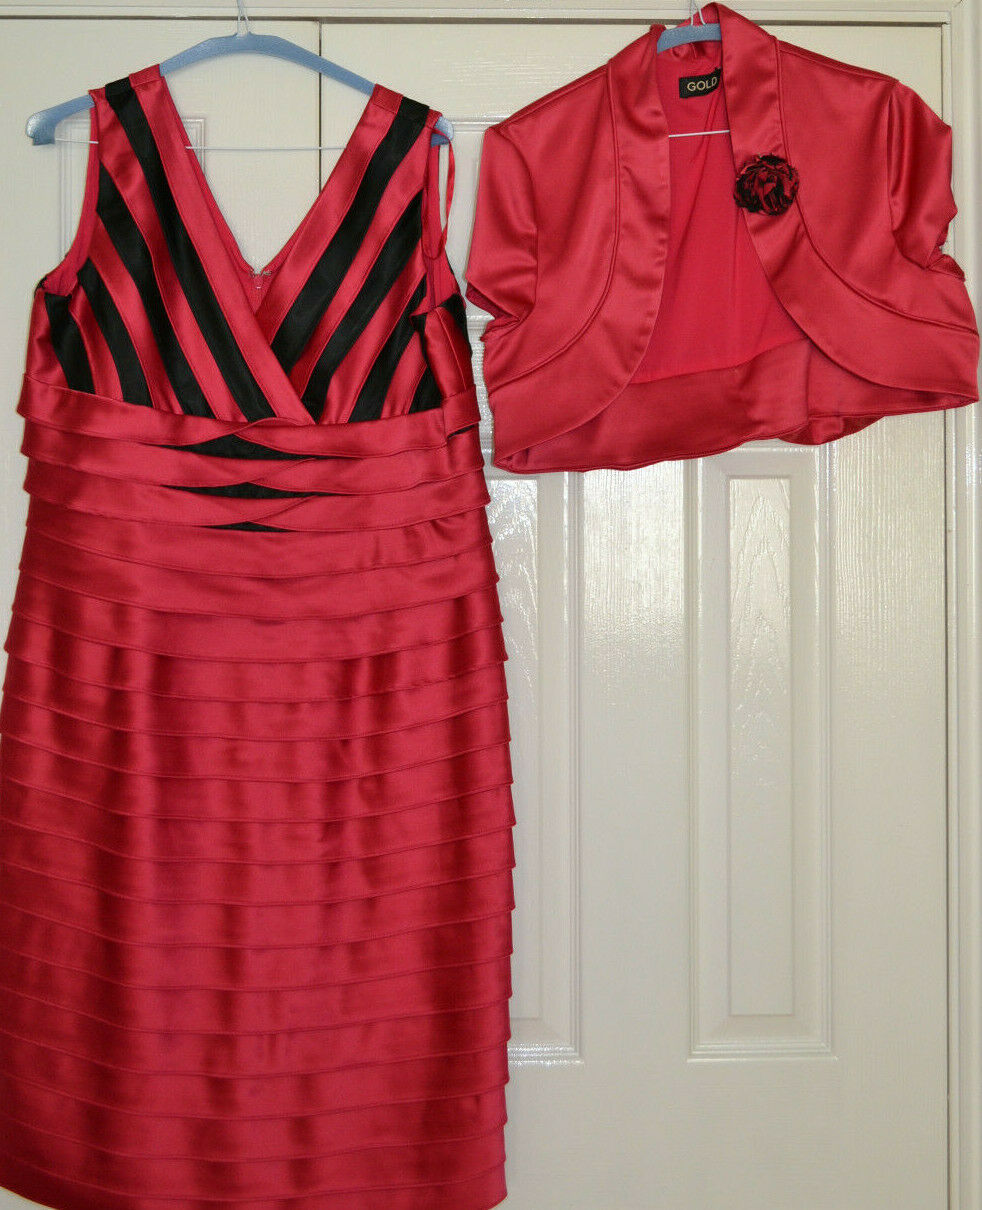 ** Designer Pleated Dress and Jacket By Gold Size 16, Dark Pink. Worn Once **